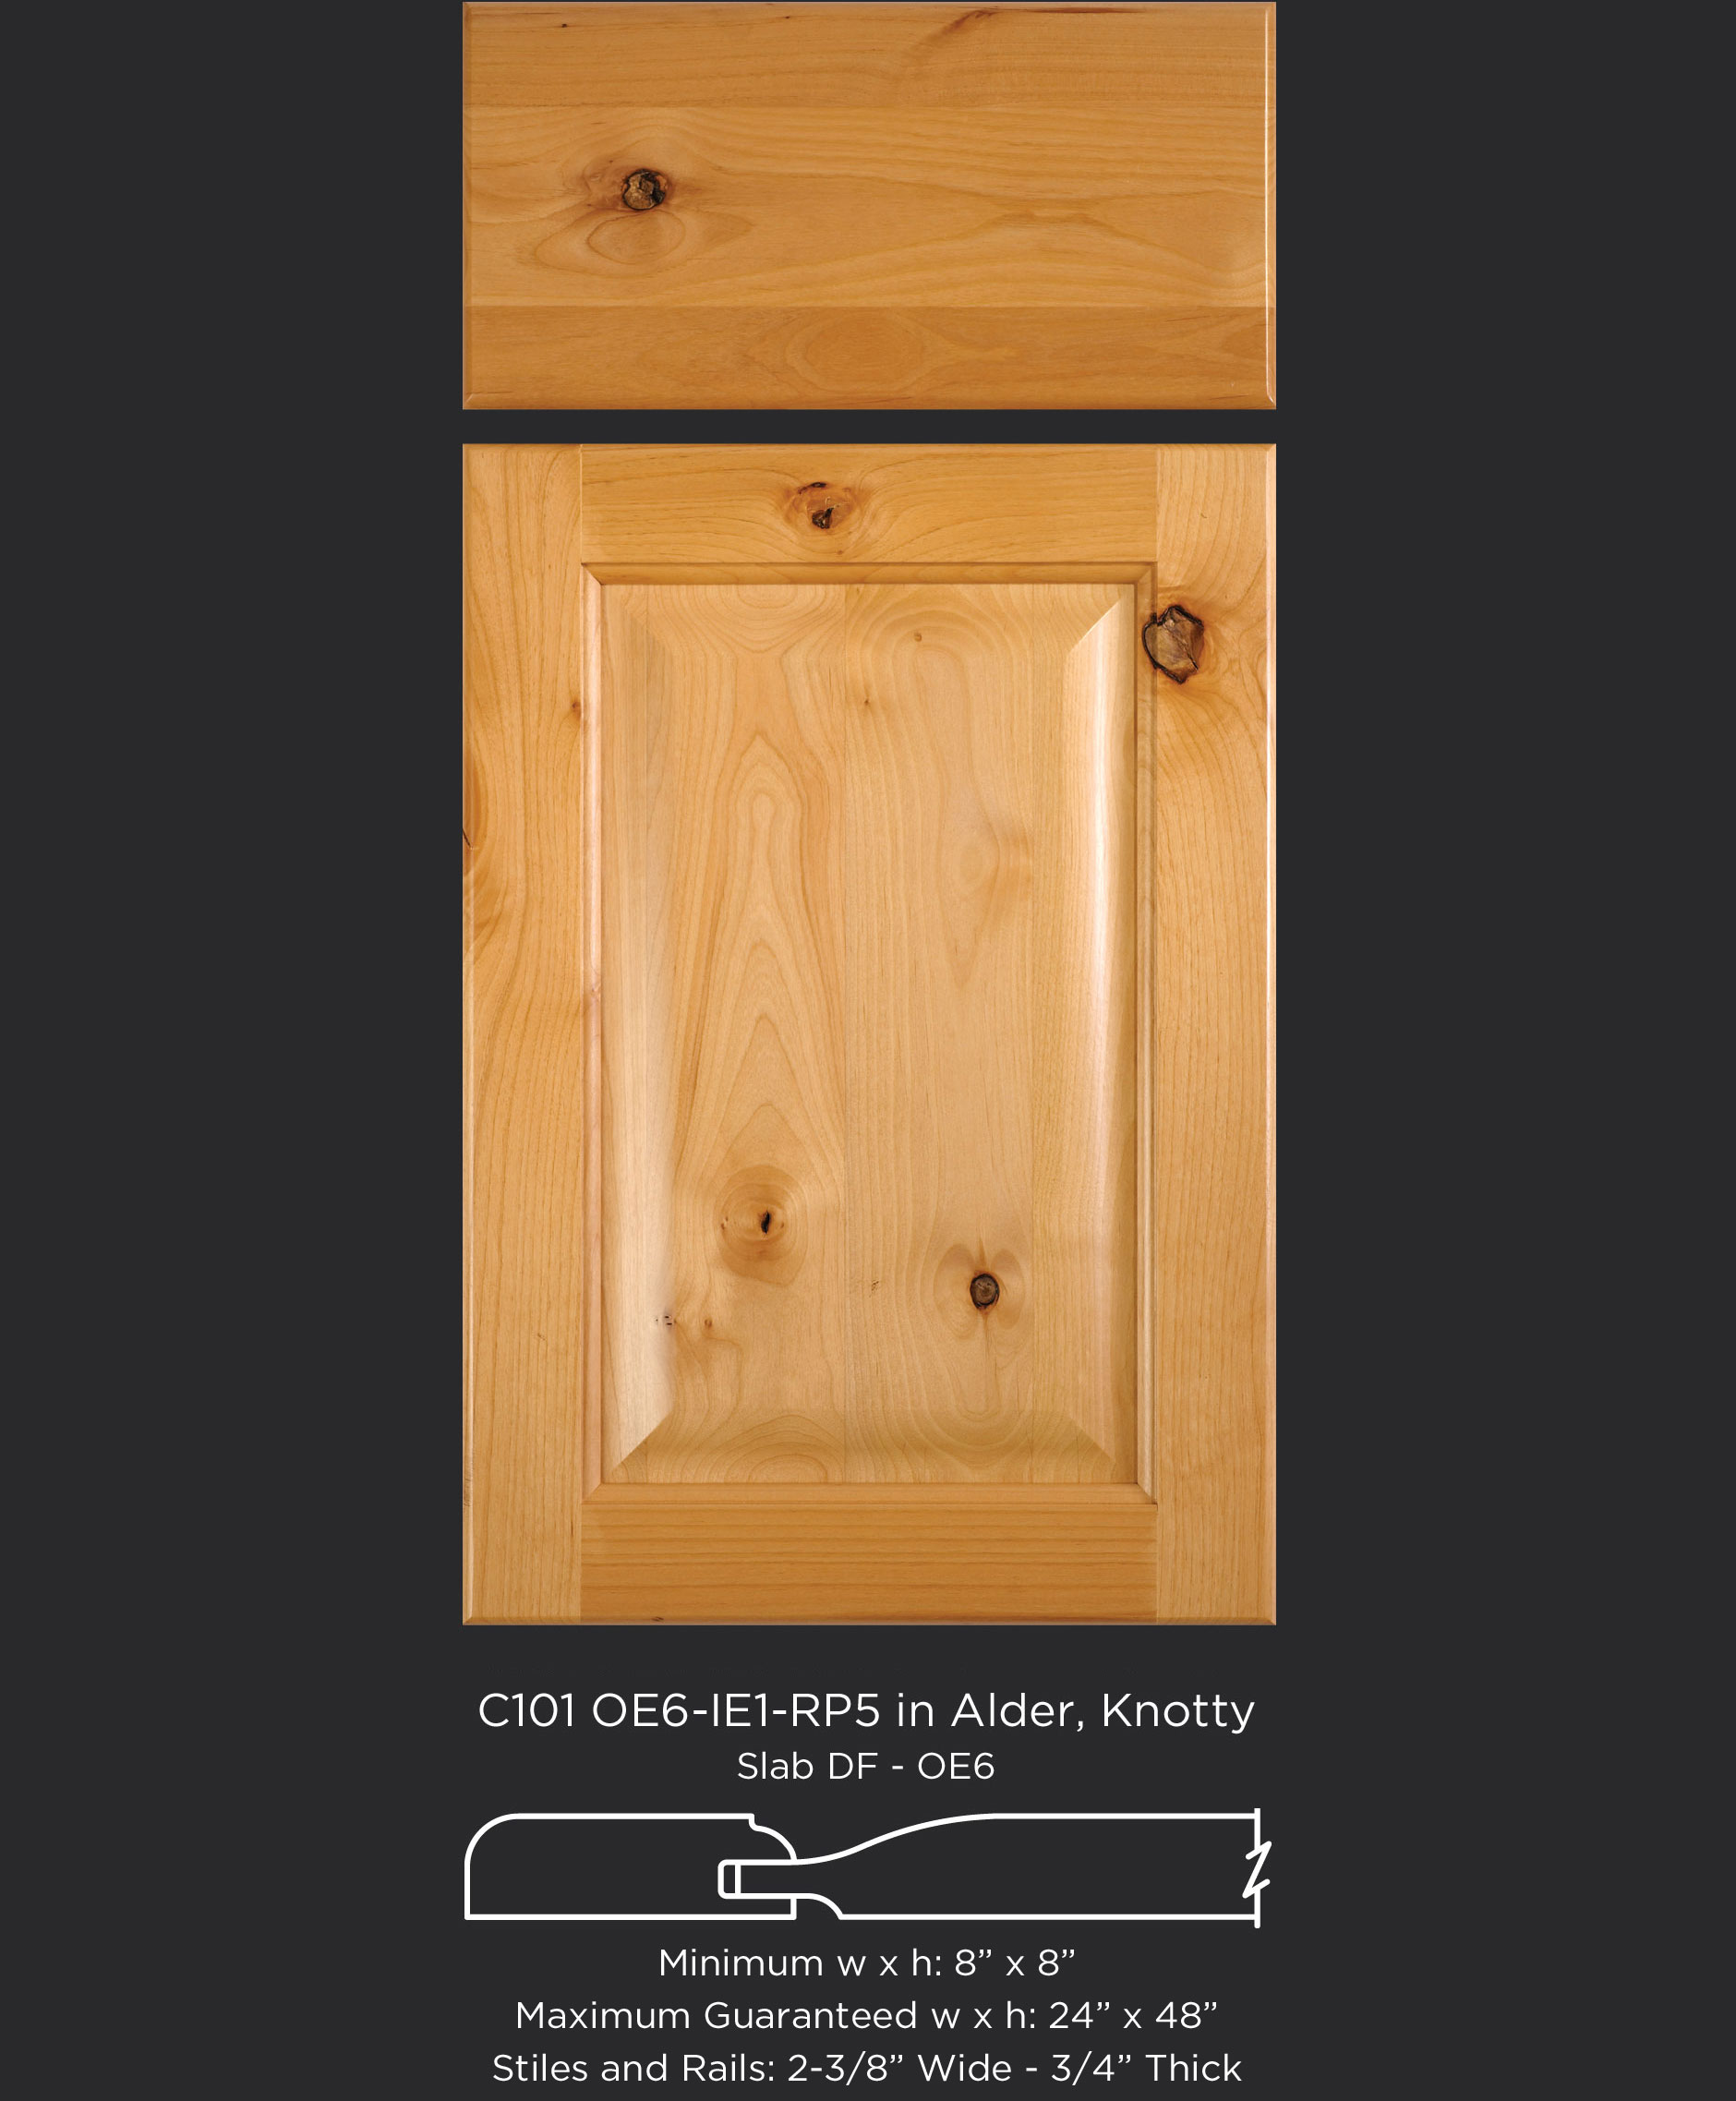 Cope and Stick Cabinet Door C101 OE6-IE1-RP5 Alder, Knotty and slab drawer front with OE6